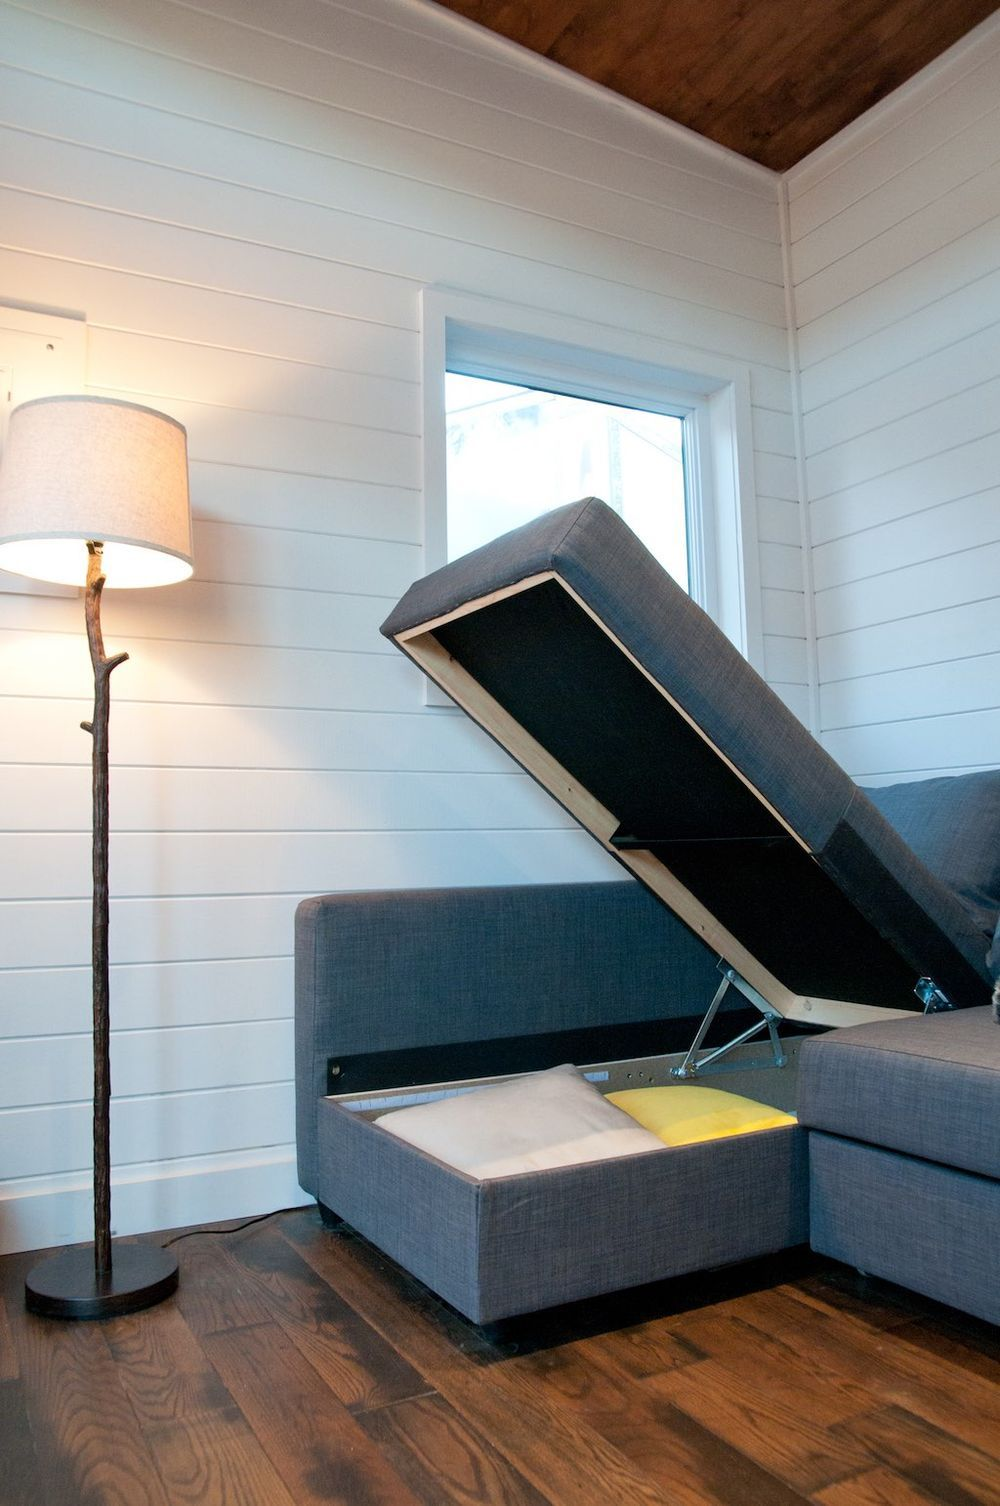 Sofa storage in a tiny house.